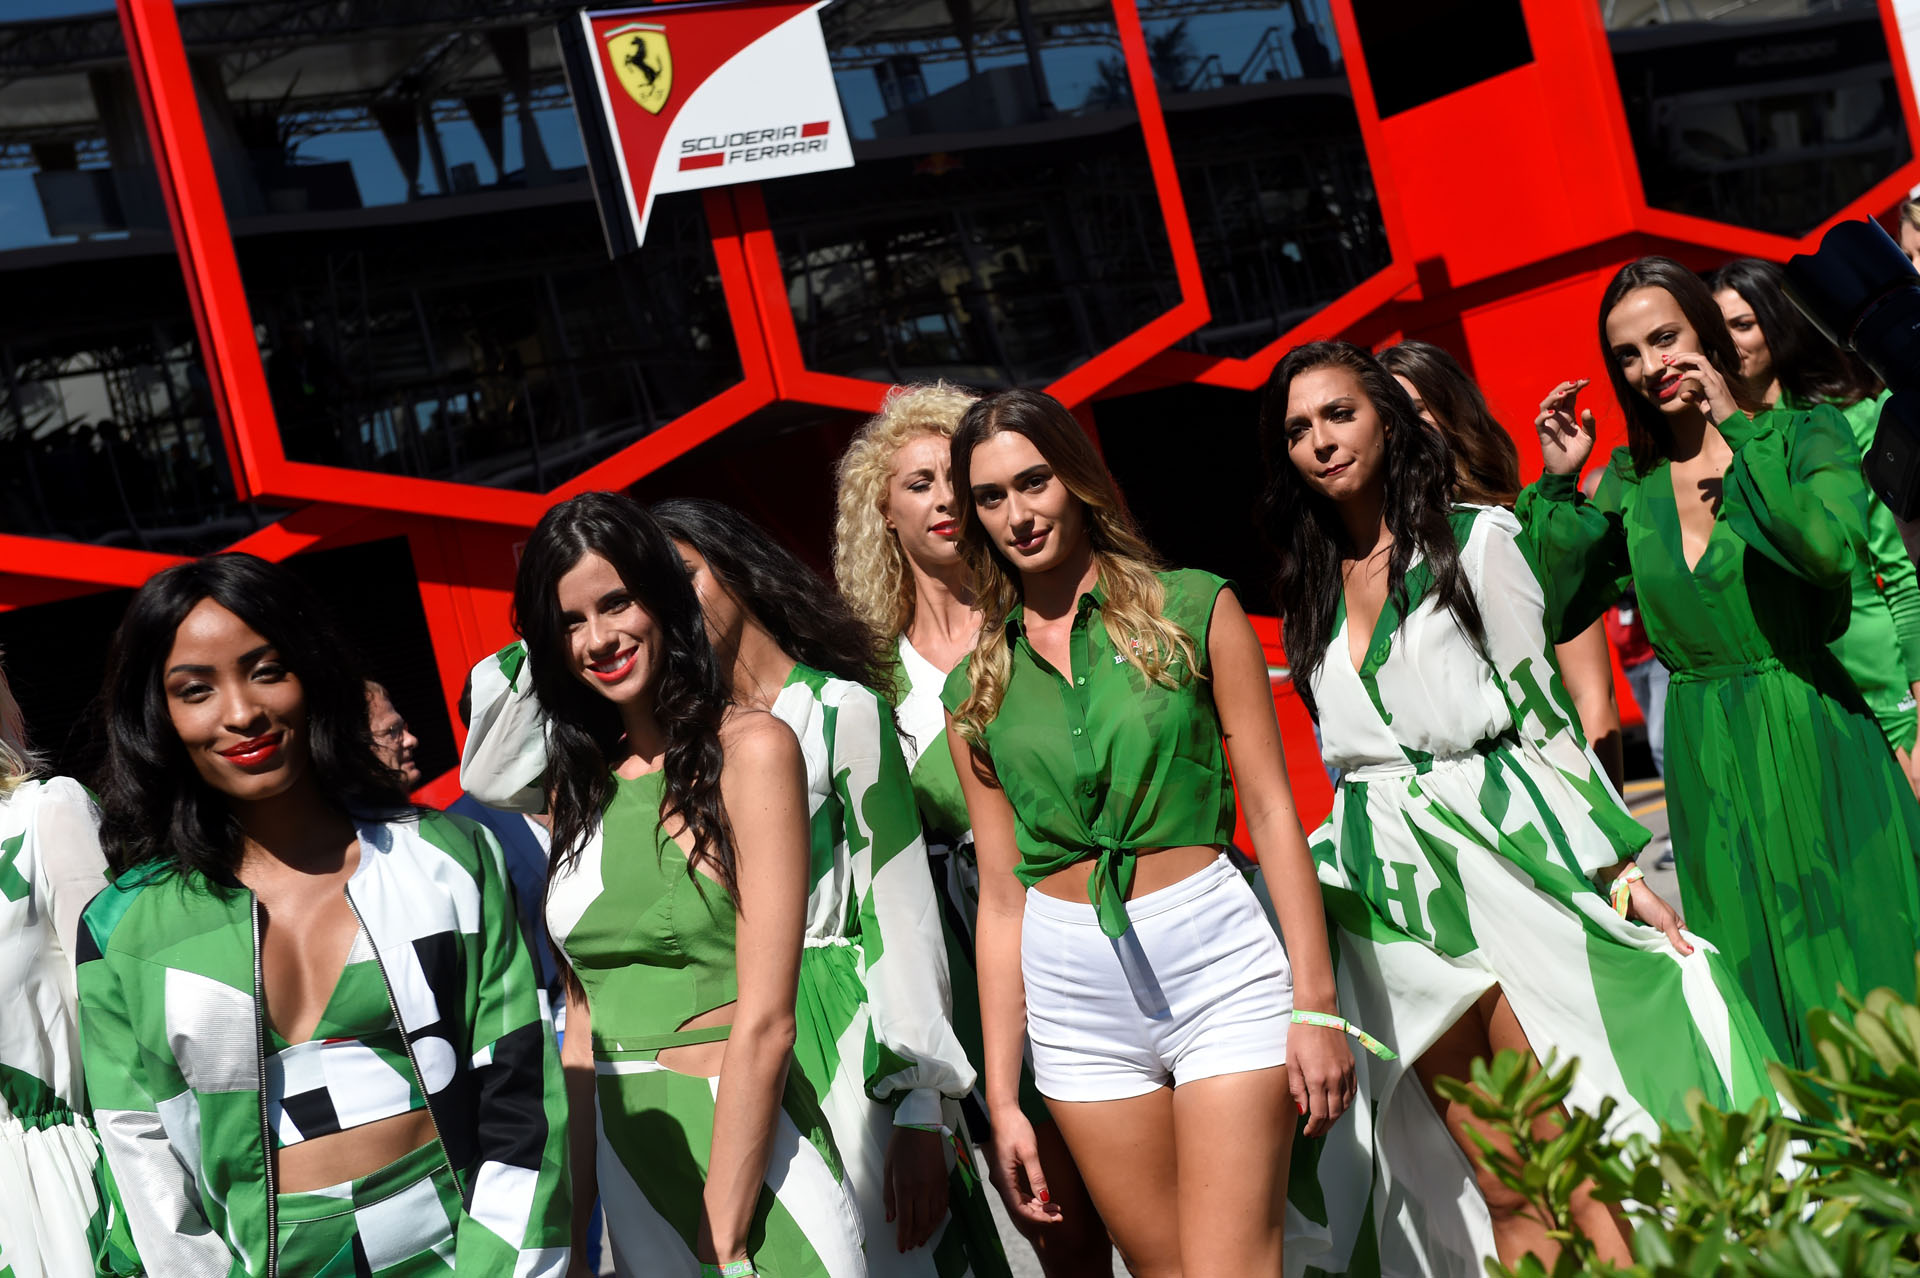 Grid girls arrive for the pit lane walk ahead of the Italian Formula One Grand Prix at the Autodromo Nazionale circuit in Monza on September 3, 2017. / AFP PHOTO / Miguel MEDINA